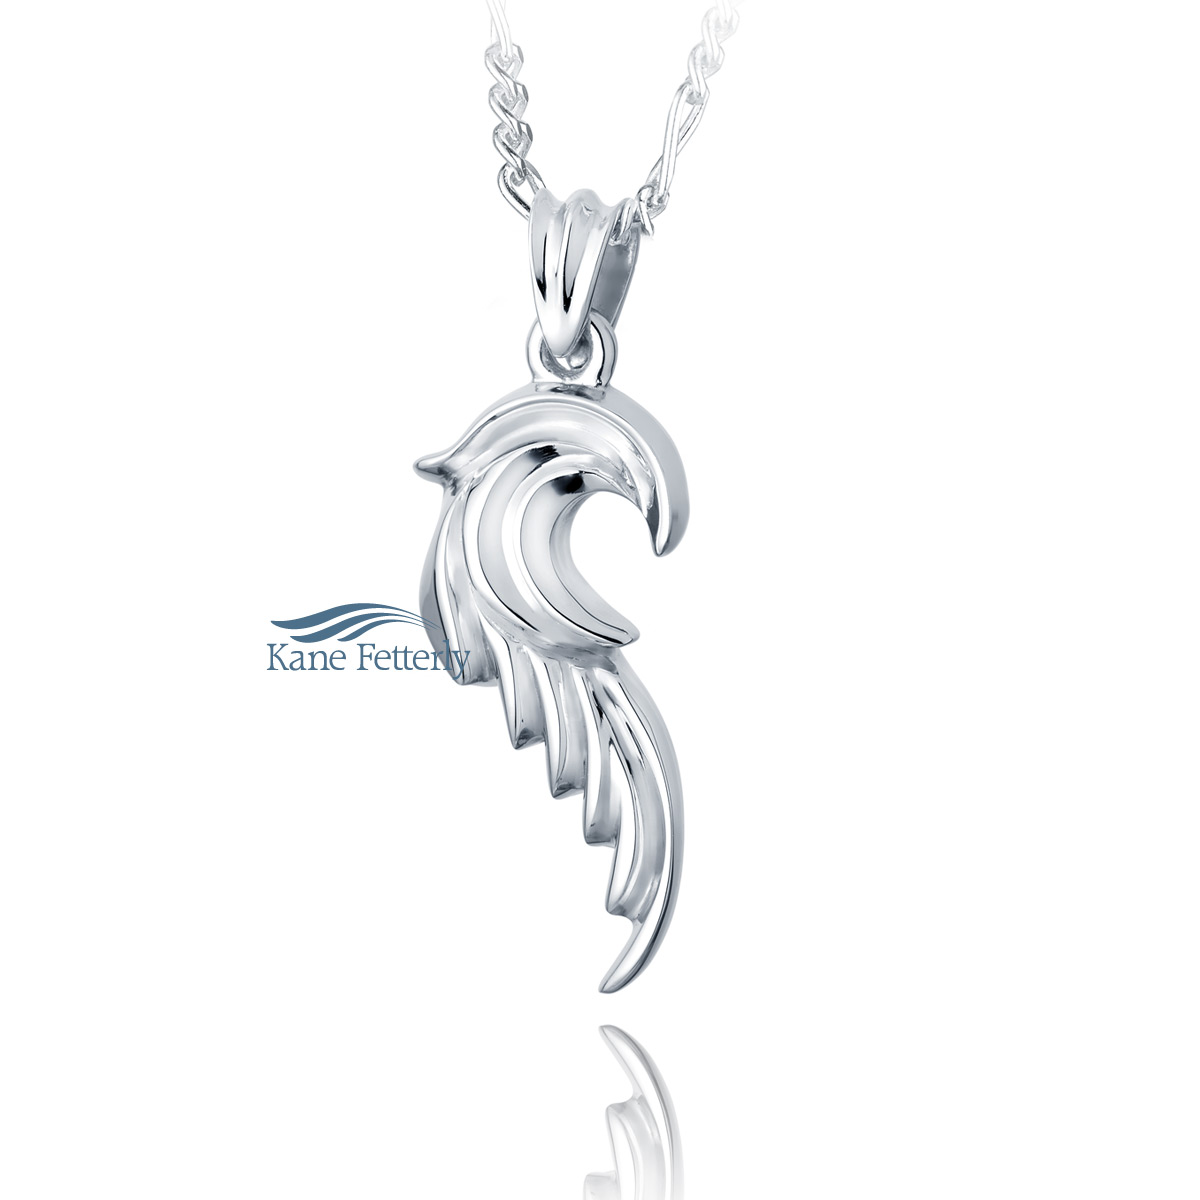 J0130 Pendant in sterling silver